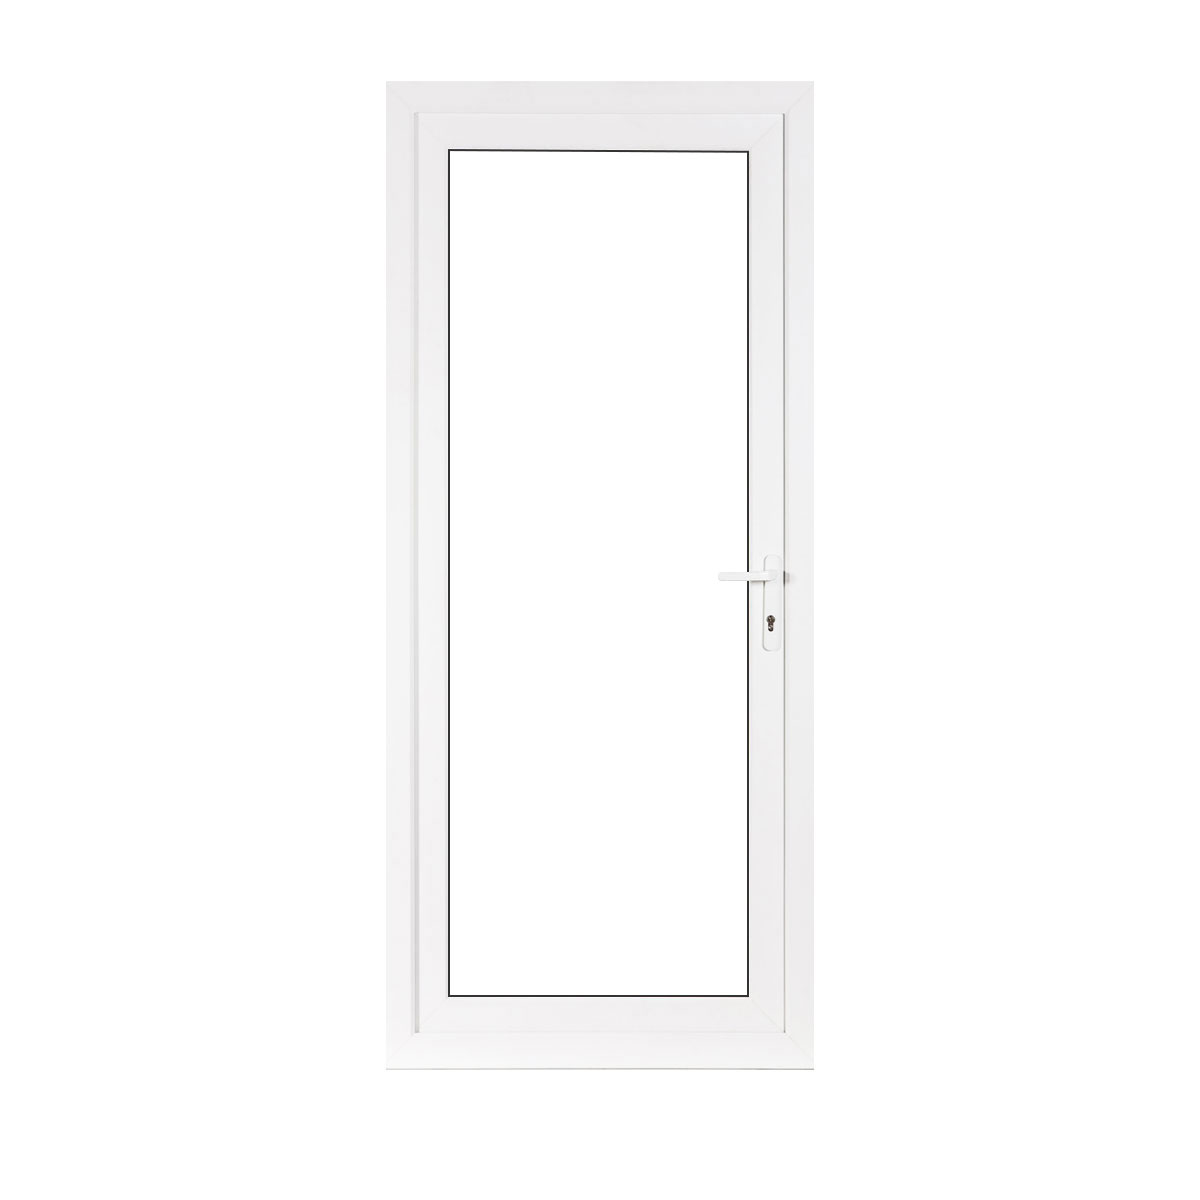 Small full glass upvc back door flying doors for Back door styles